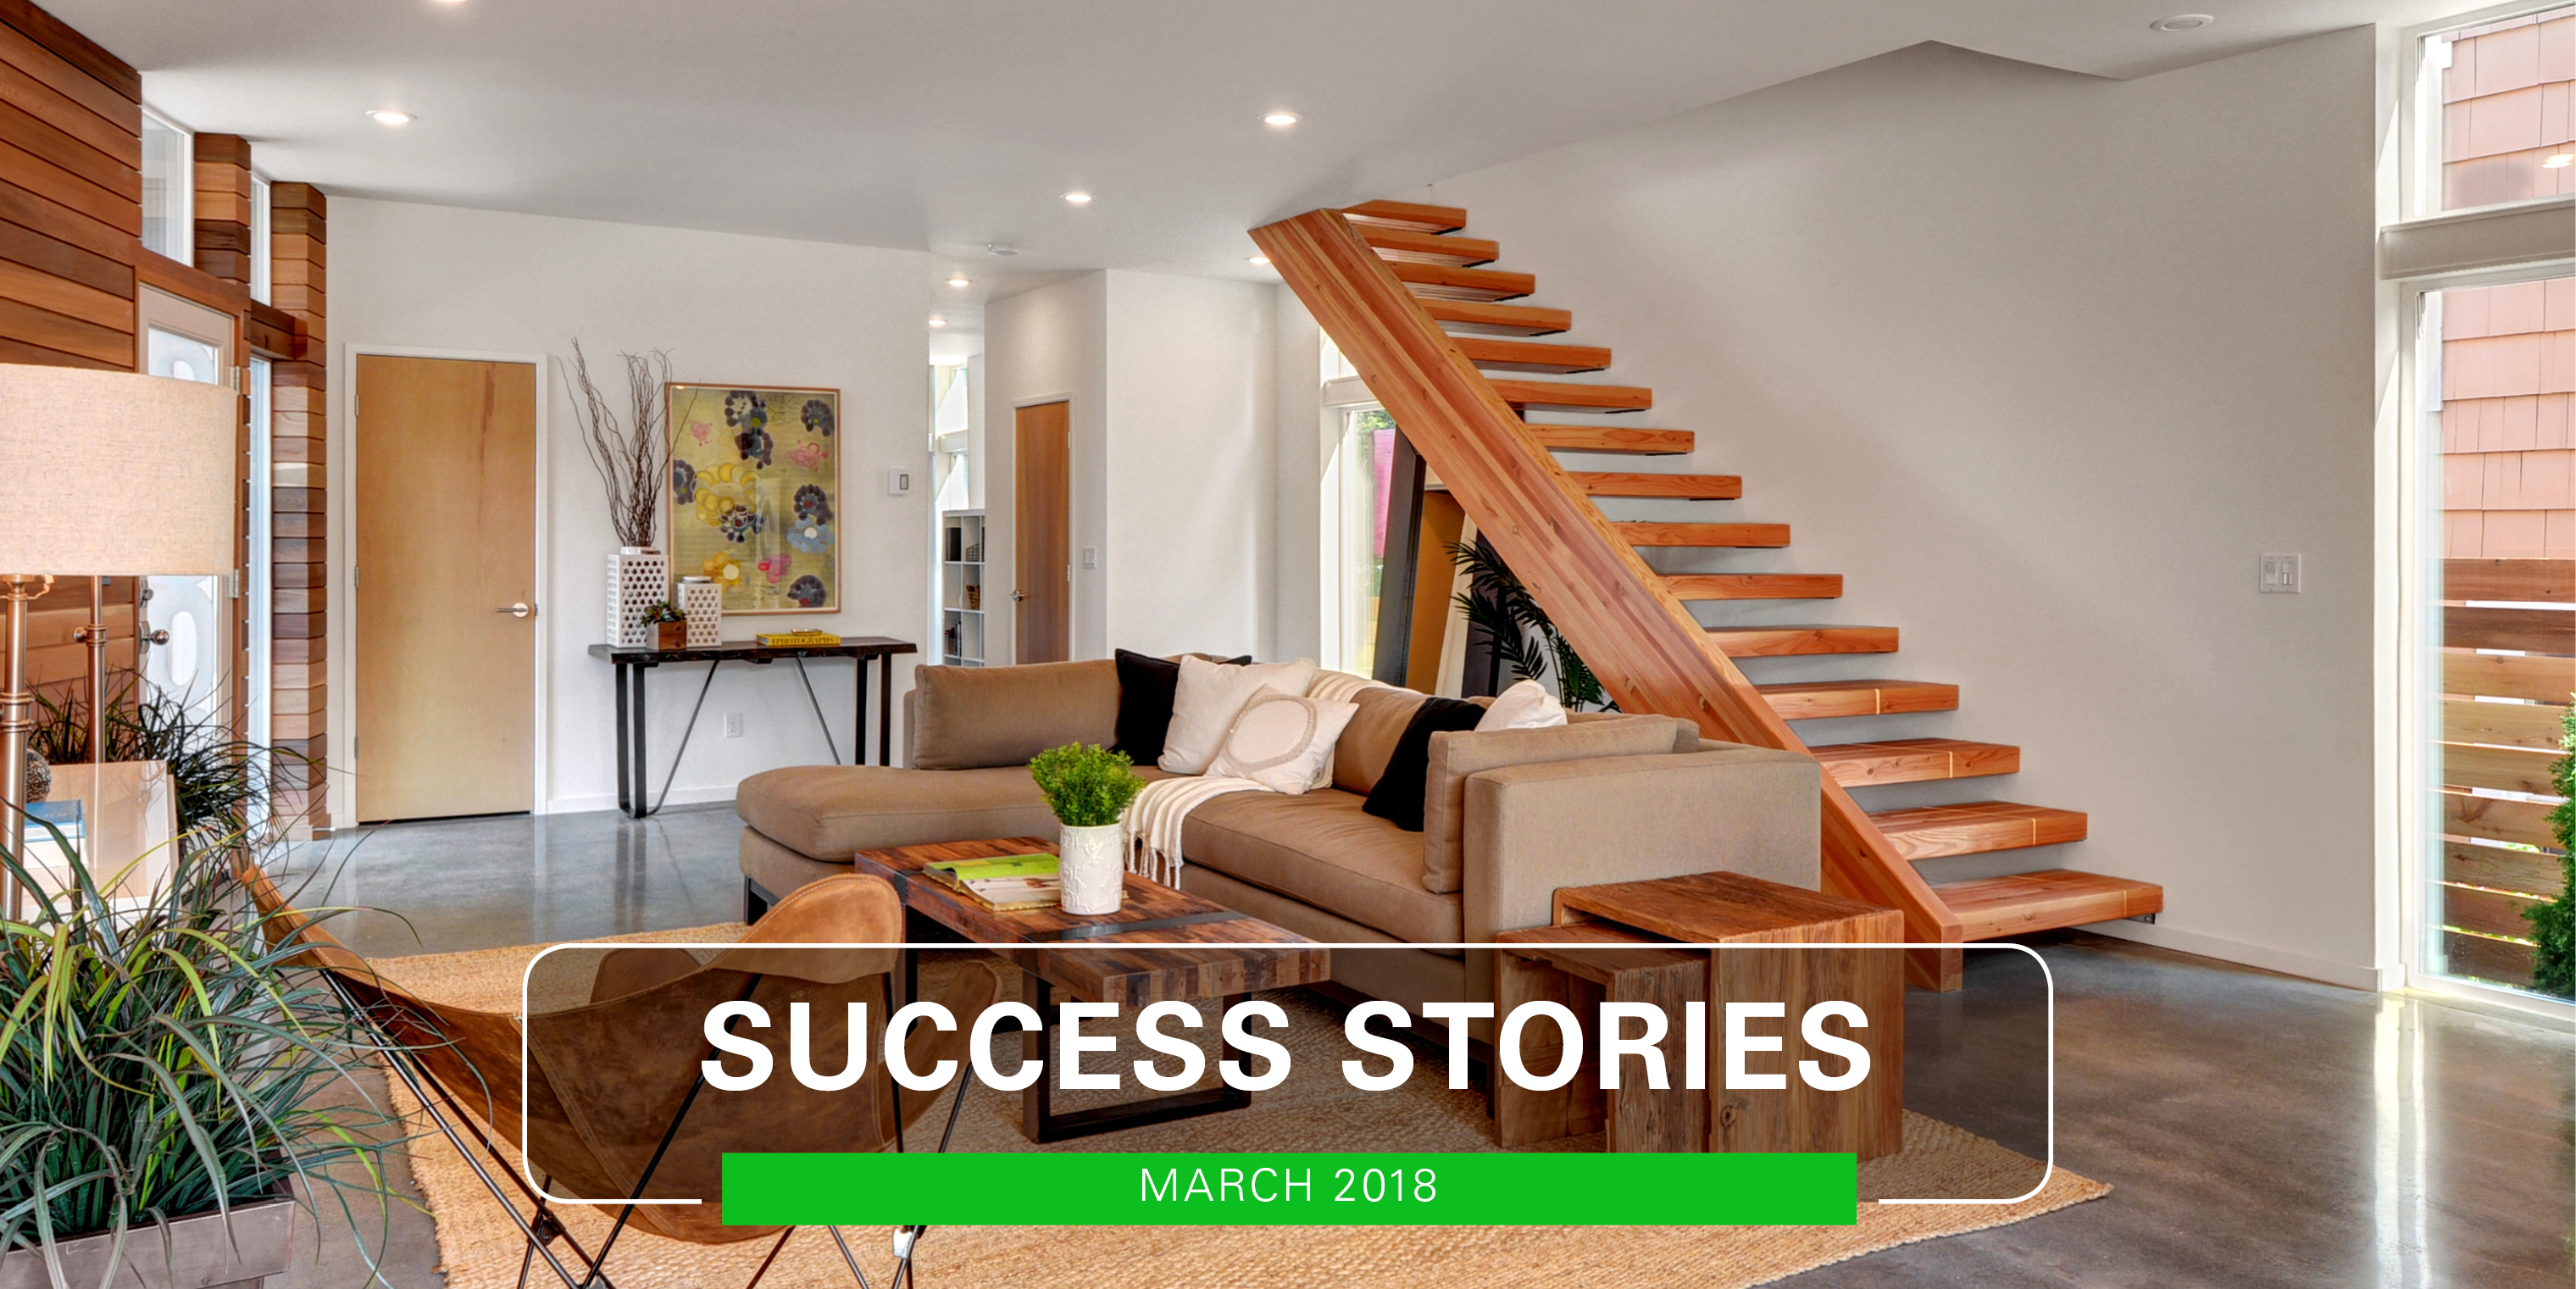 More March Success Stories 2018